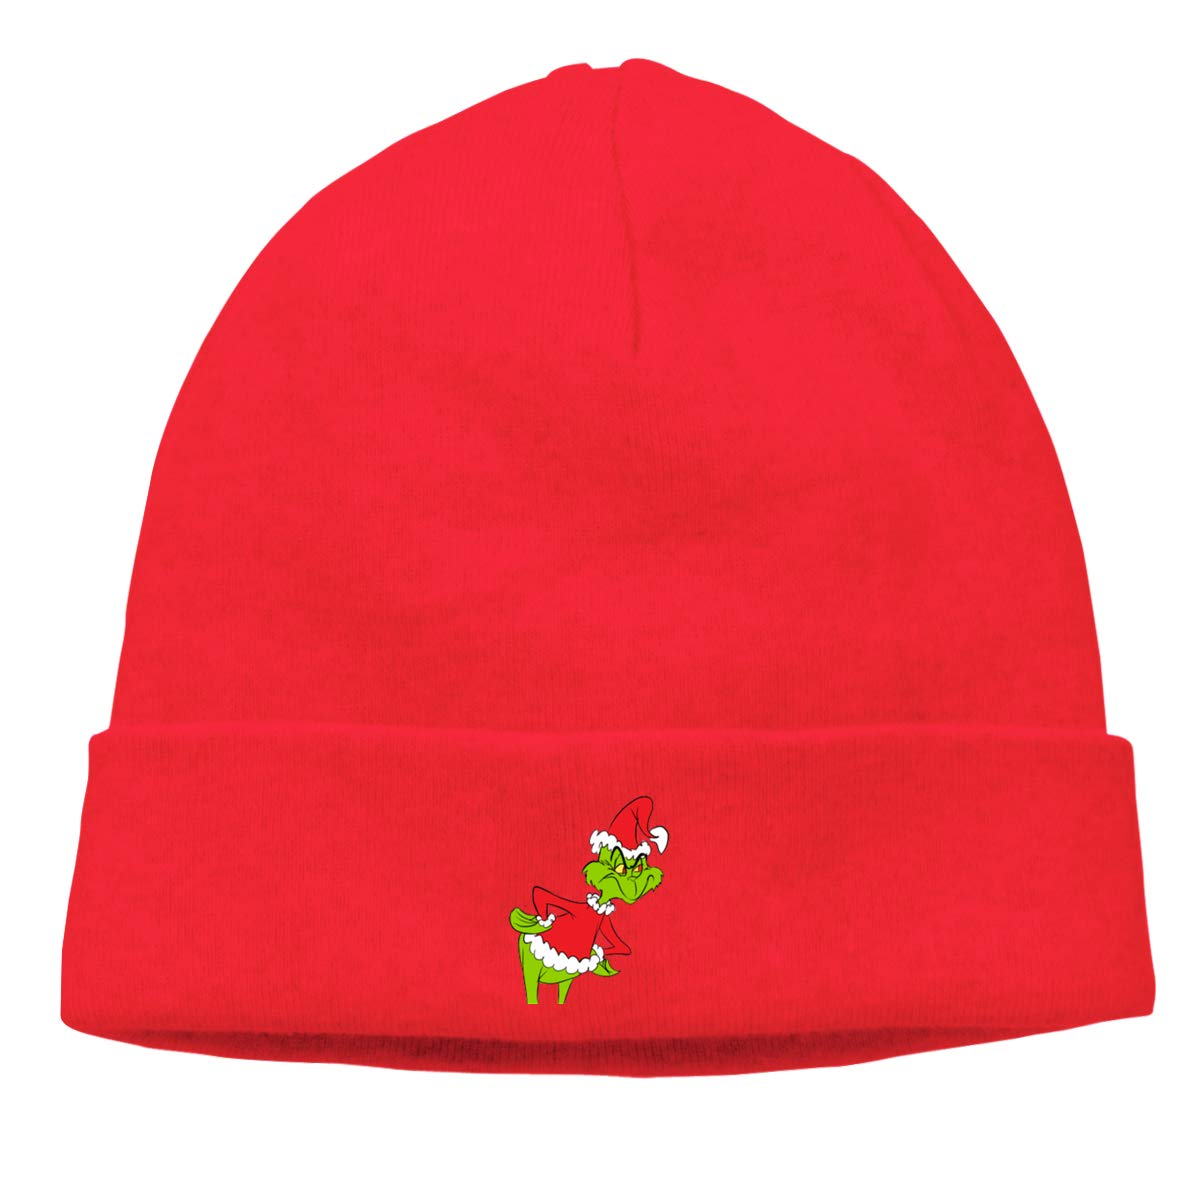 LAfd Caps Warm Beanie Hats The Grinch Unisex Knit Skull Cap at Amazon Men s  Clothing store  f5bc6a016c4